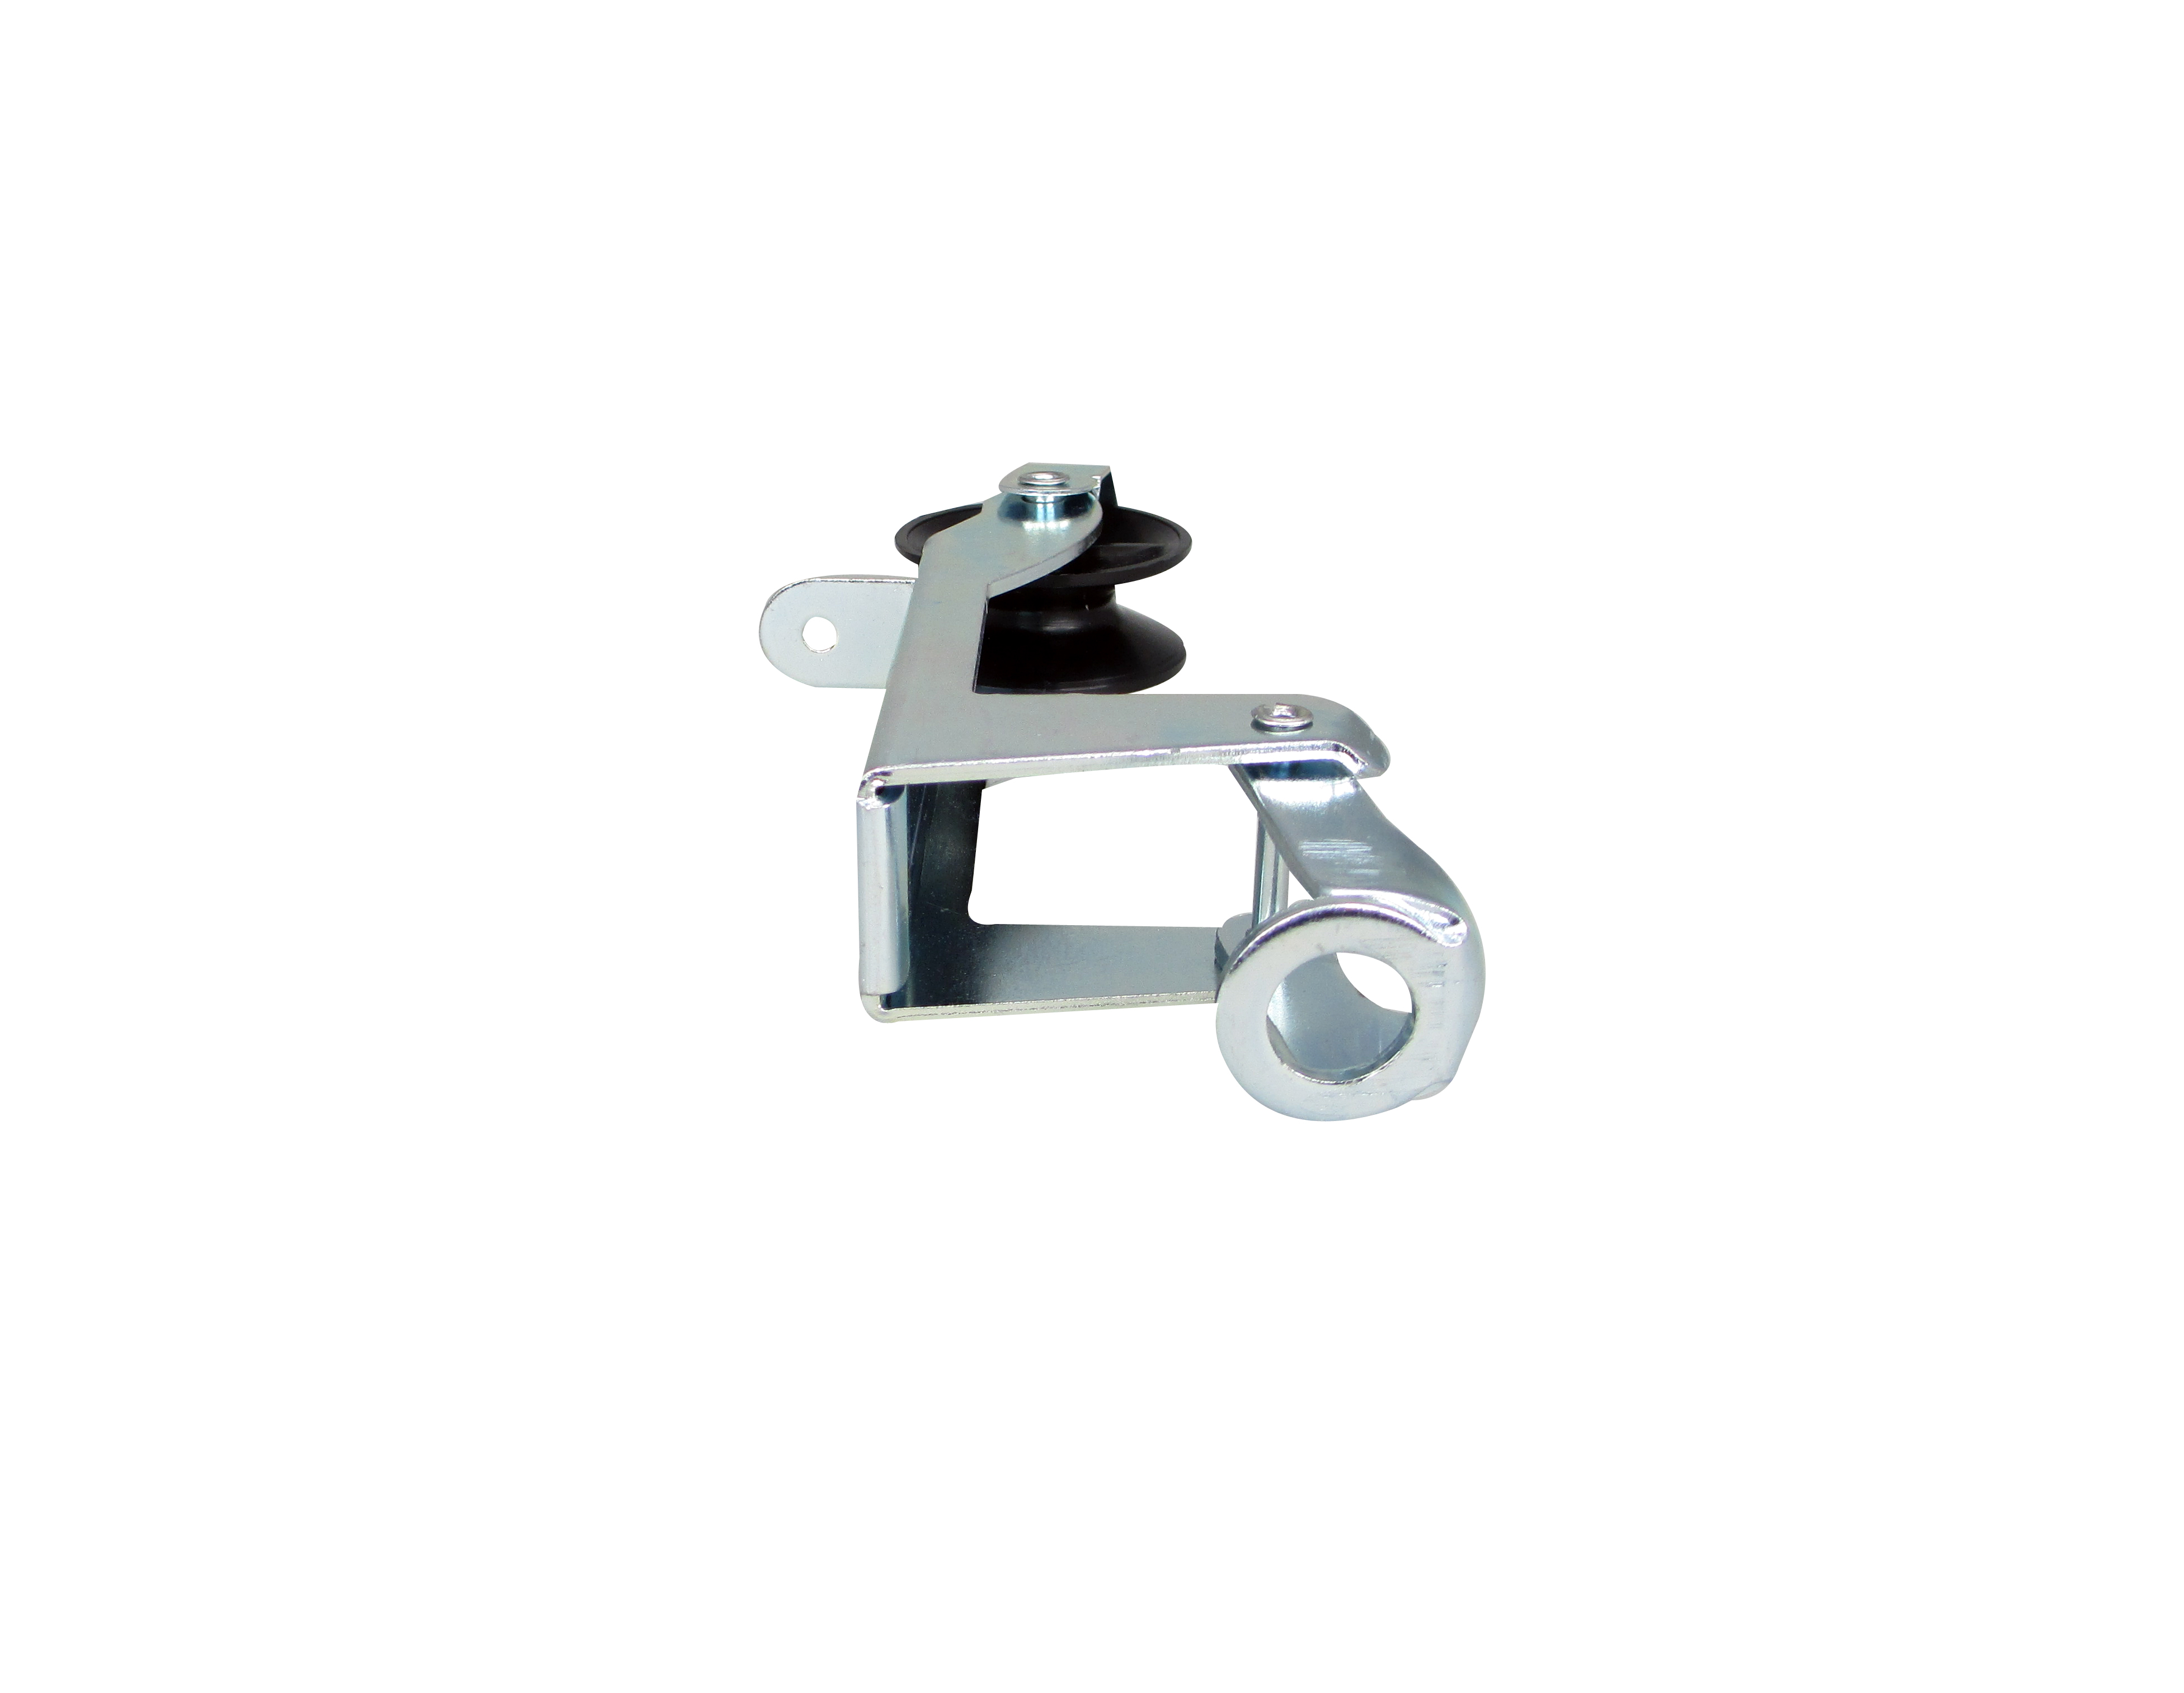 Pactrade Marine Small Boat Anchor Locking Control Pulley Bow Roller 1//4 to 1//2 Rope Up to 20Lbs